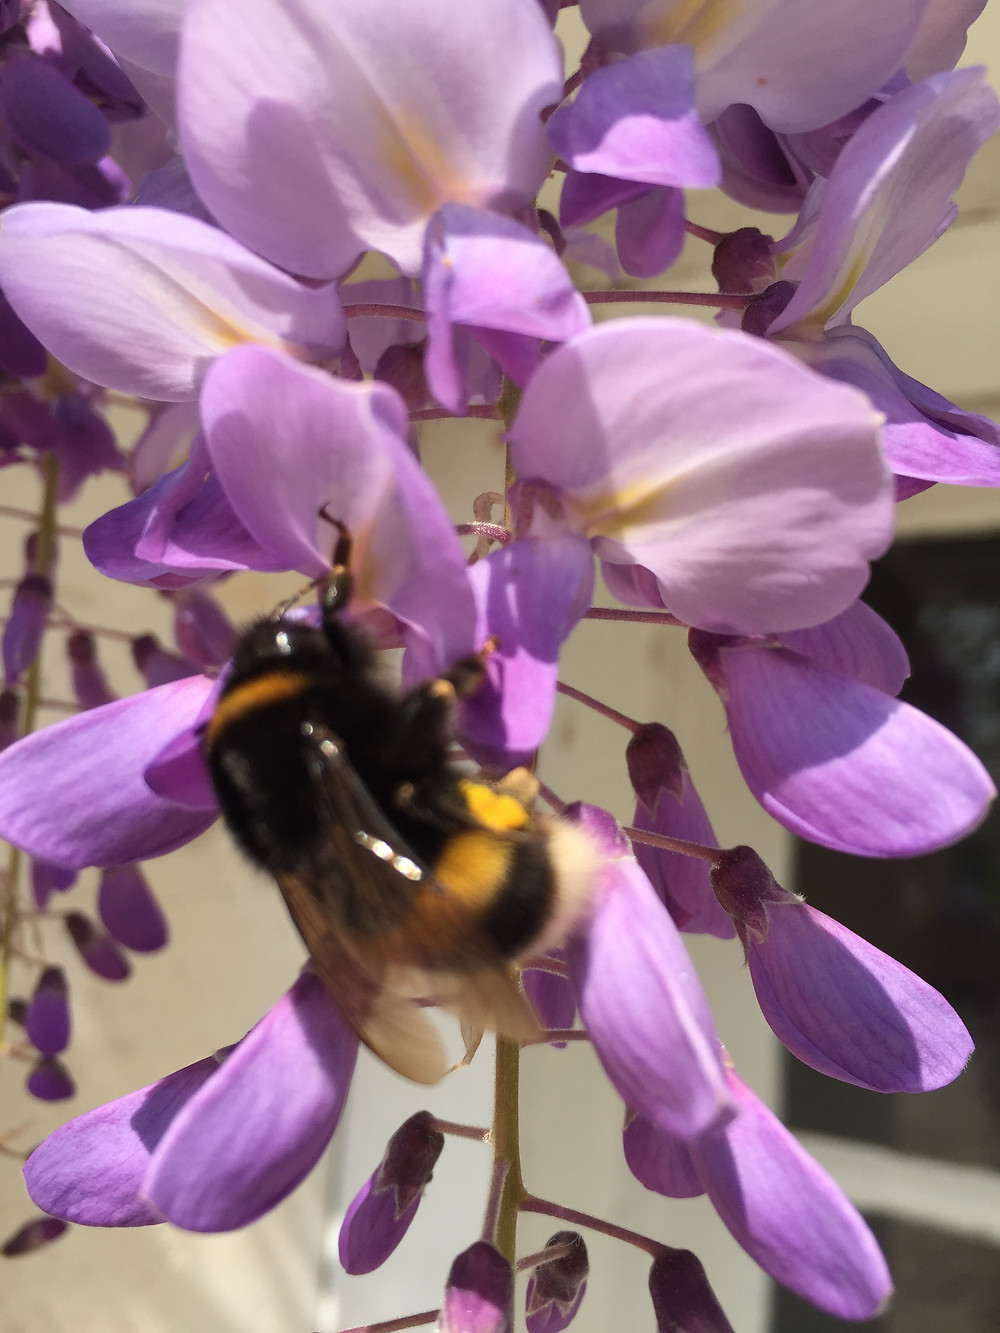 The bees love the wisteria!